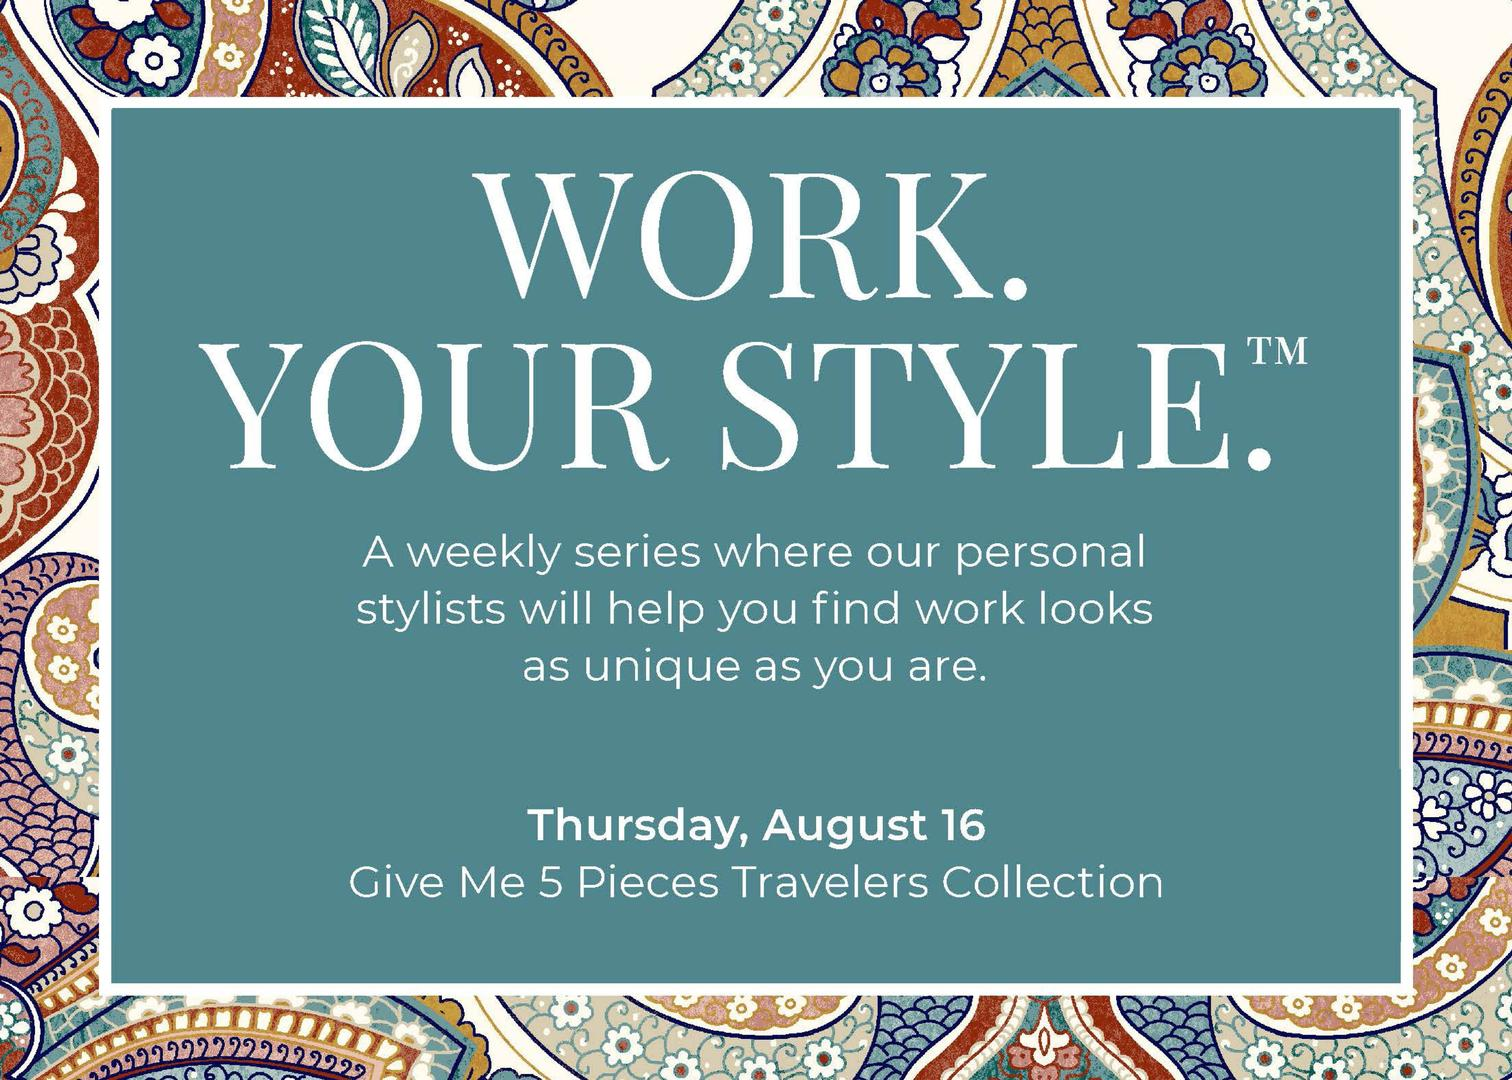 The Orchard Town Center, Work You Style- Give Me 5 Pieces Travelers Collection  Event Image: 14647 Delaware St, Suite 400, Westminster, CO 80023, US